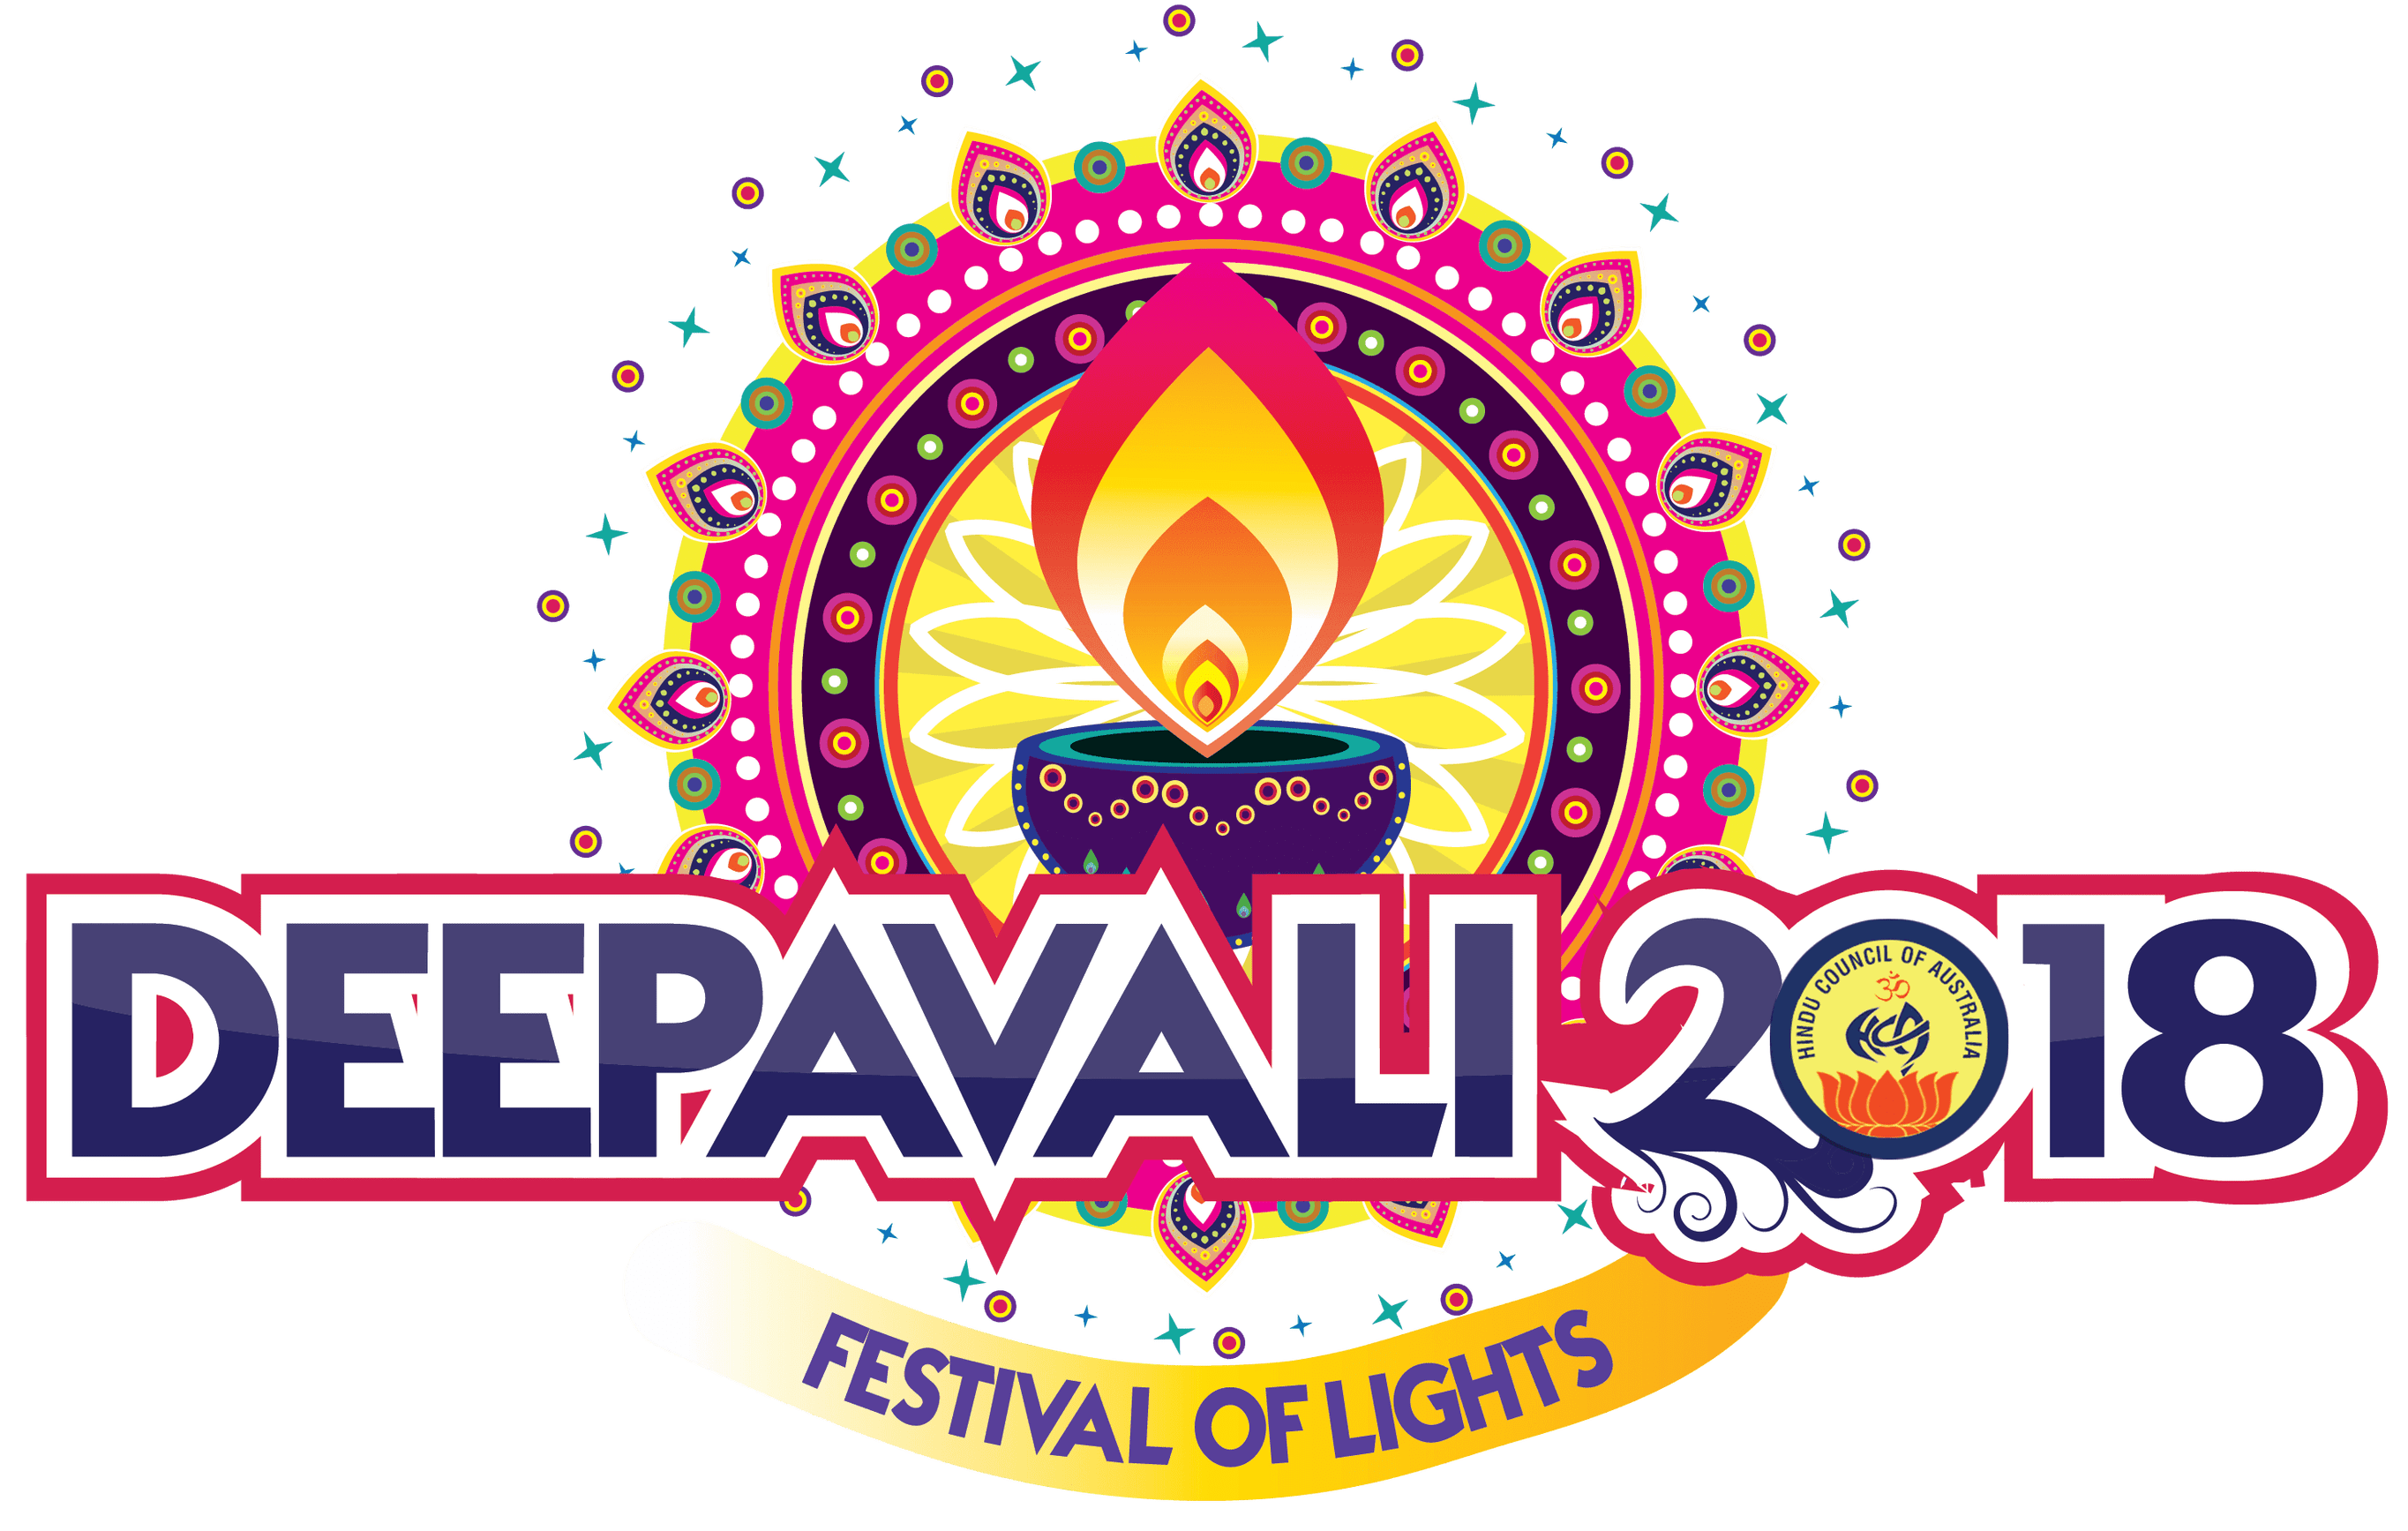 Festival clipart festival indian. Home deepavali the victory